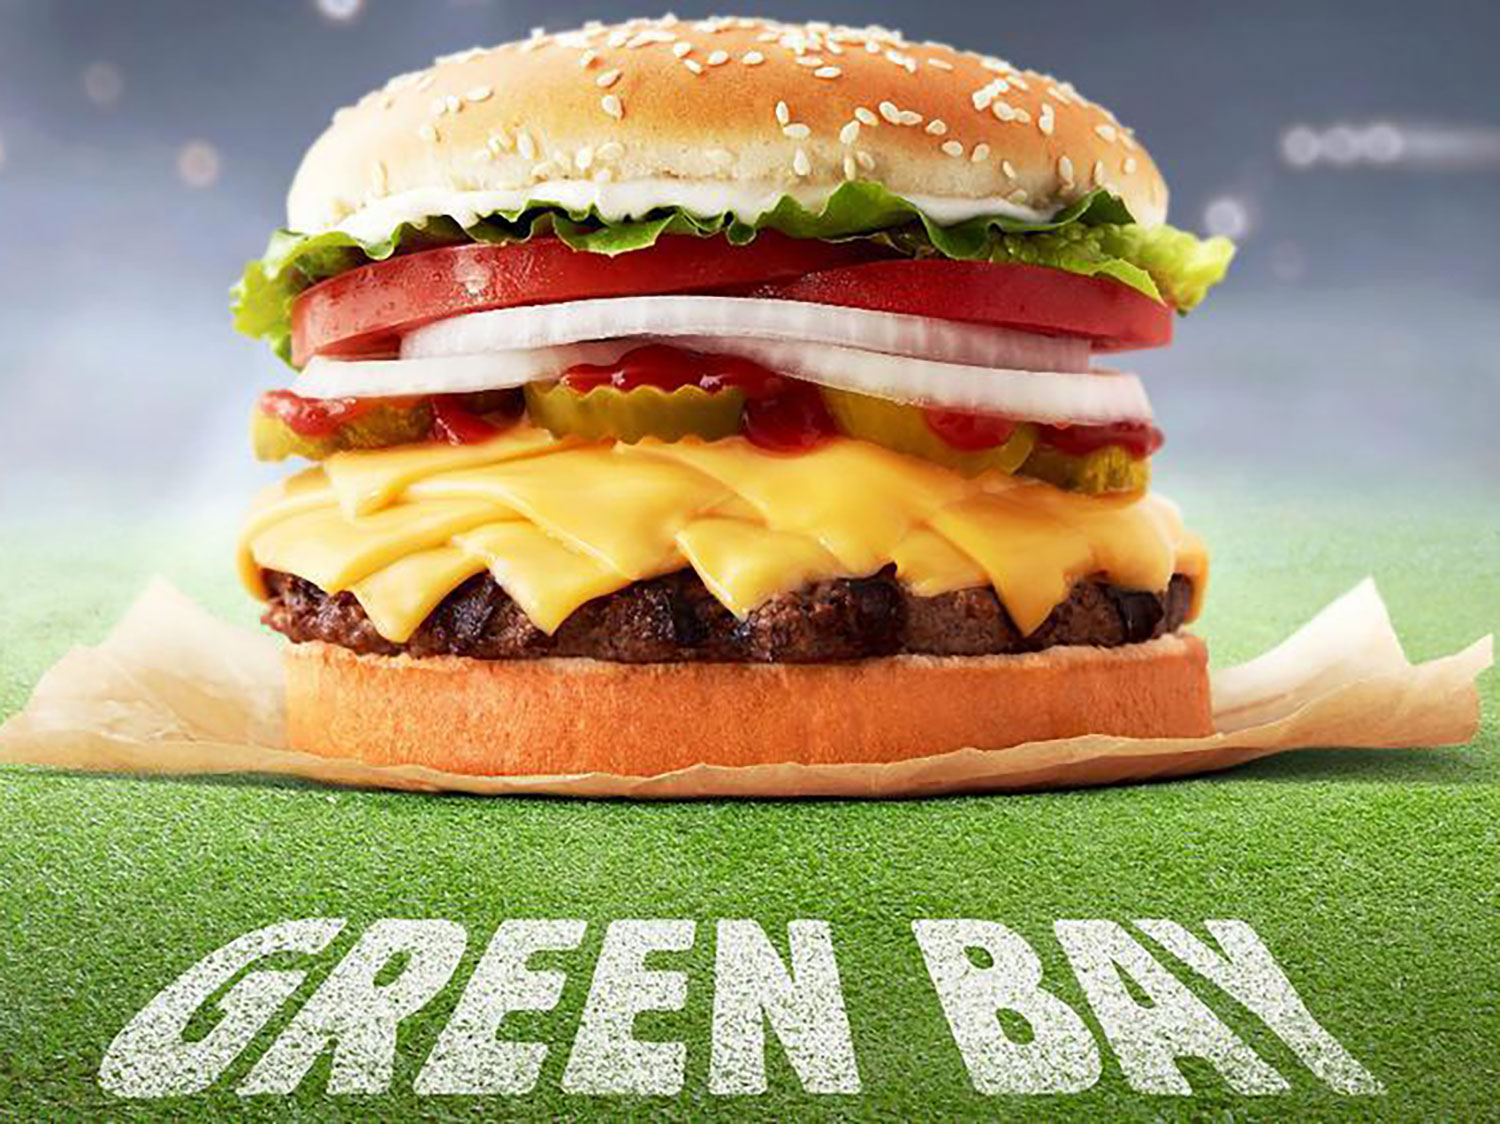 greenbaywhopper.jpg